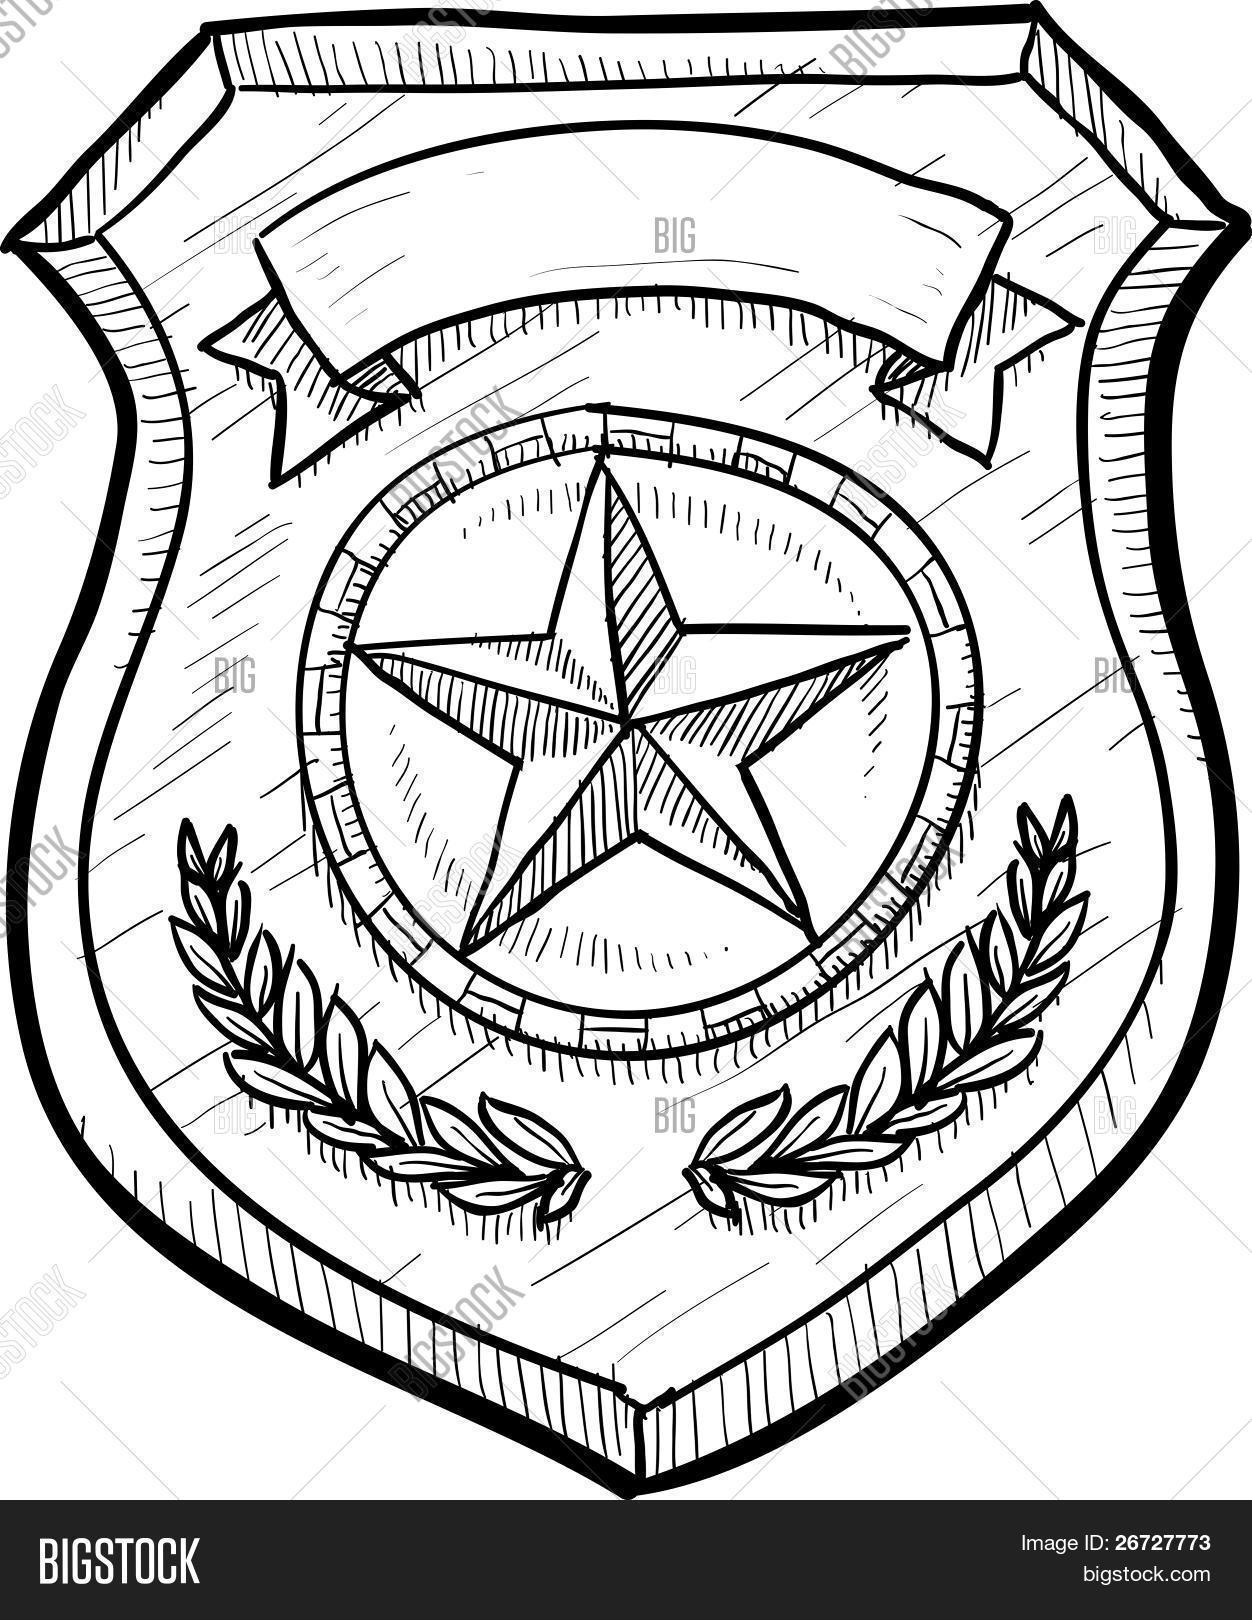 Social Media Whatsapp Social Hand Drawn 119262 likewise Heraldic Design Coat Arms Lion Shield Vintage St as well Handcuffs moreover MT P together with Police Officer Or Policeman Profession Sketch Icon Vector 18590165. on security badge drawing